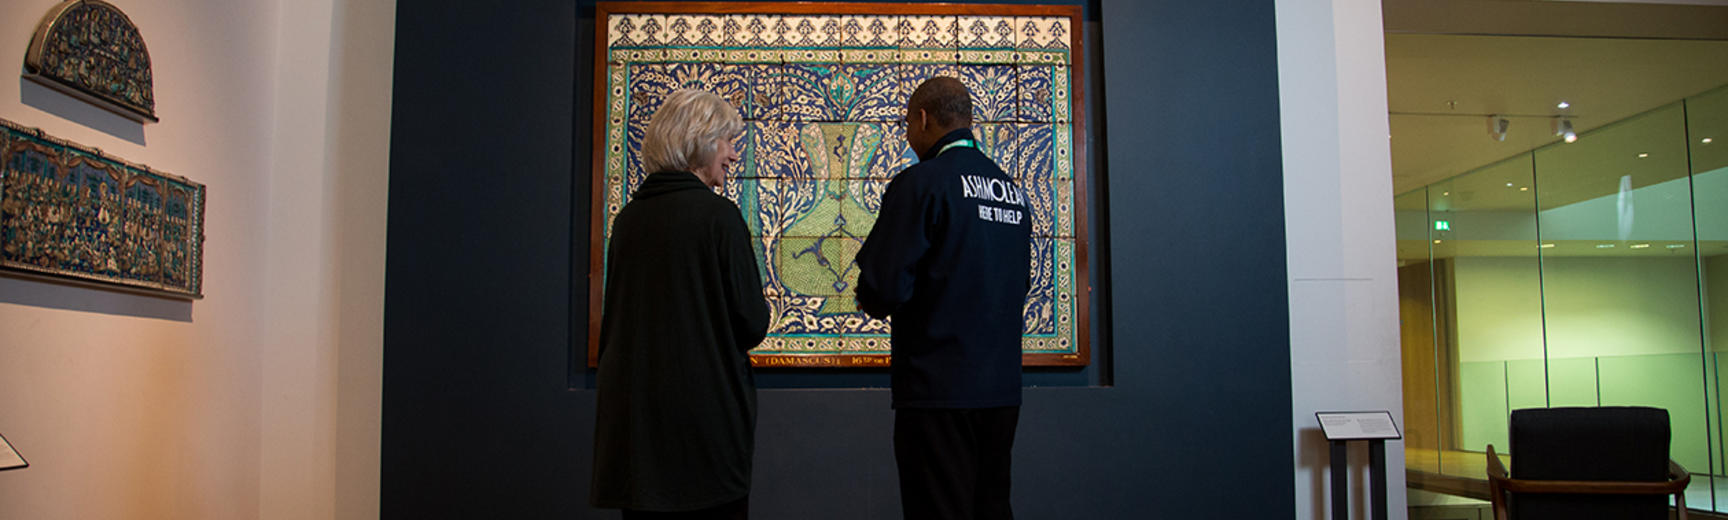 A visitor engagement assistant is telling a visitor some information about the Islamic Tiles in front of them